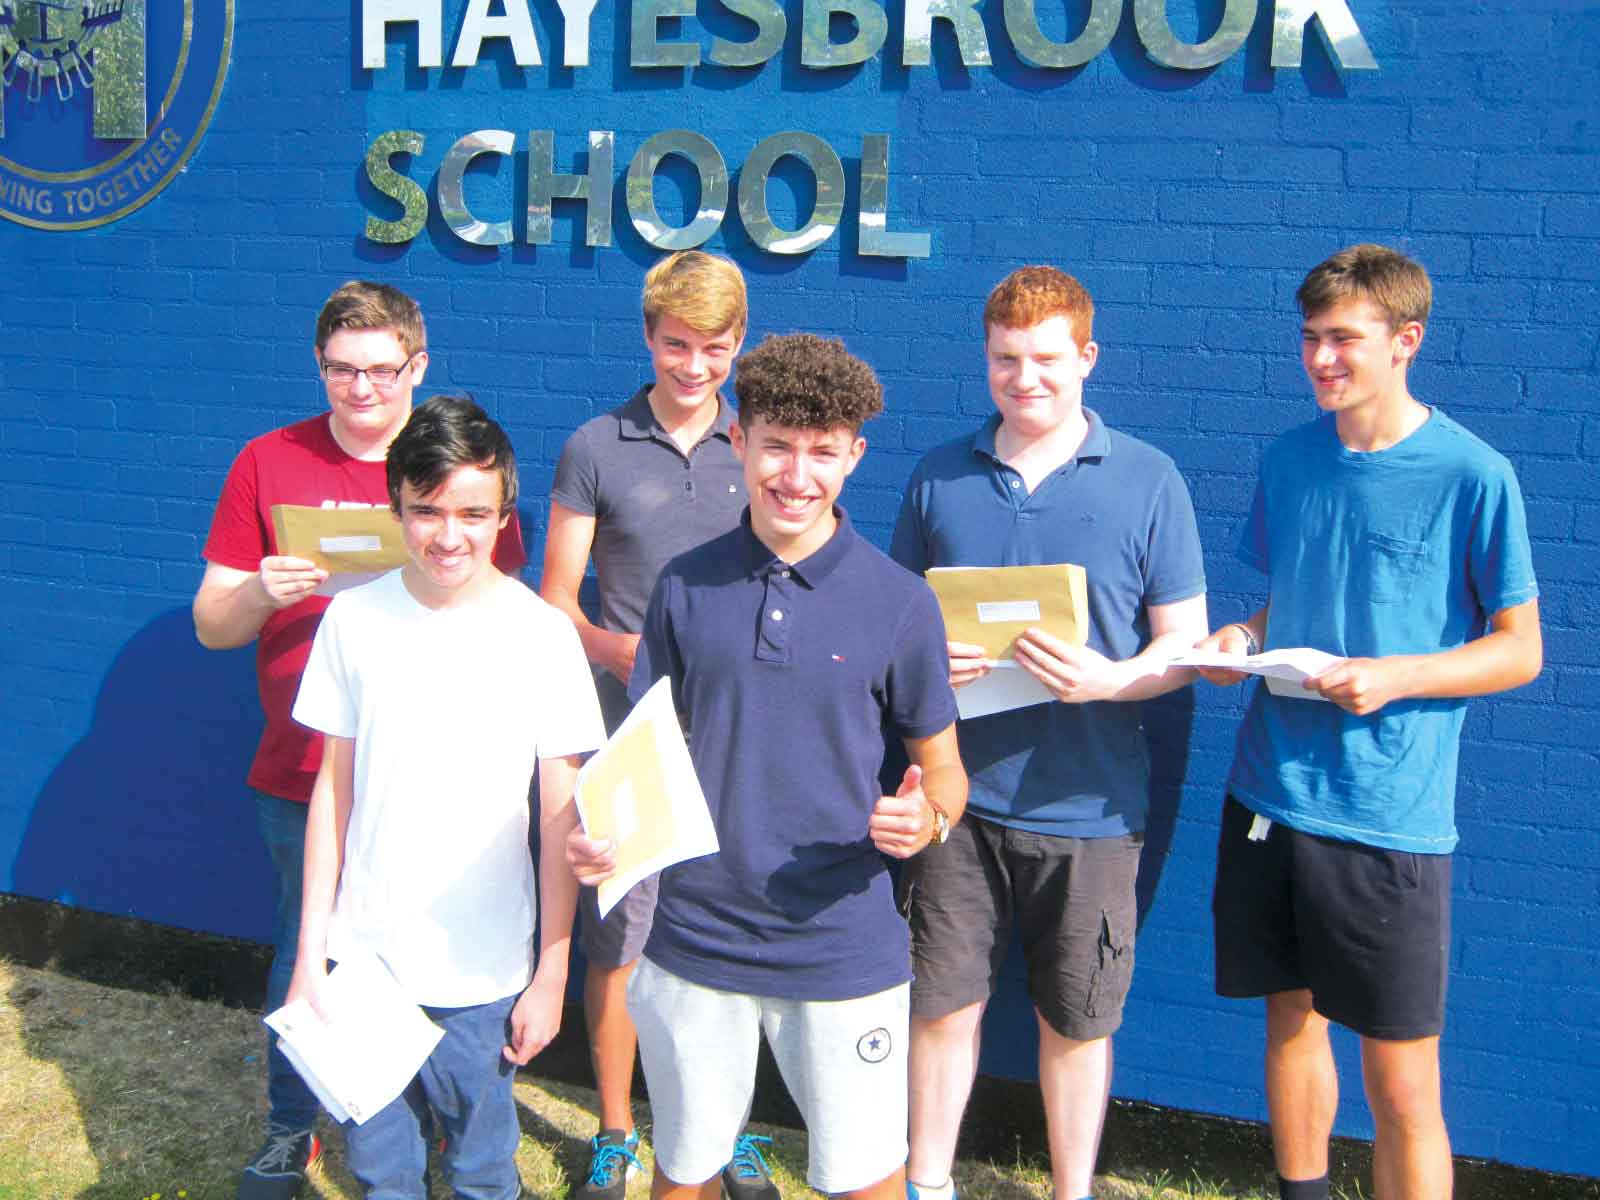 The Hayesbrook School GCSE Results 2016